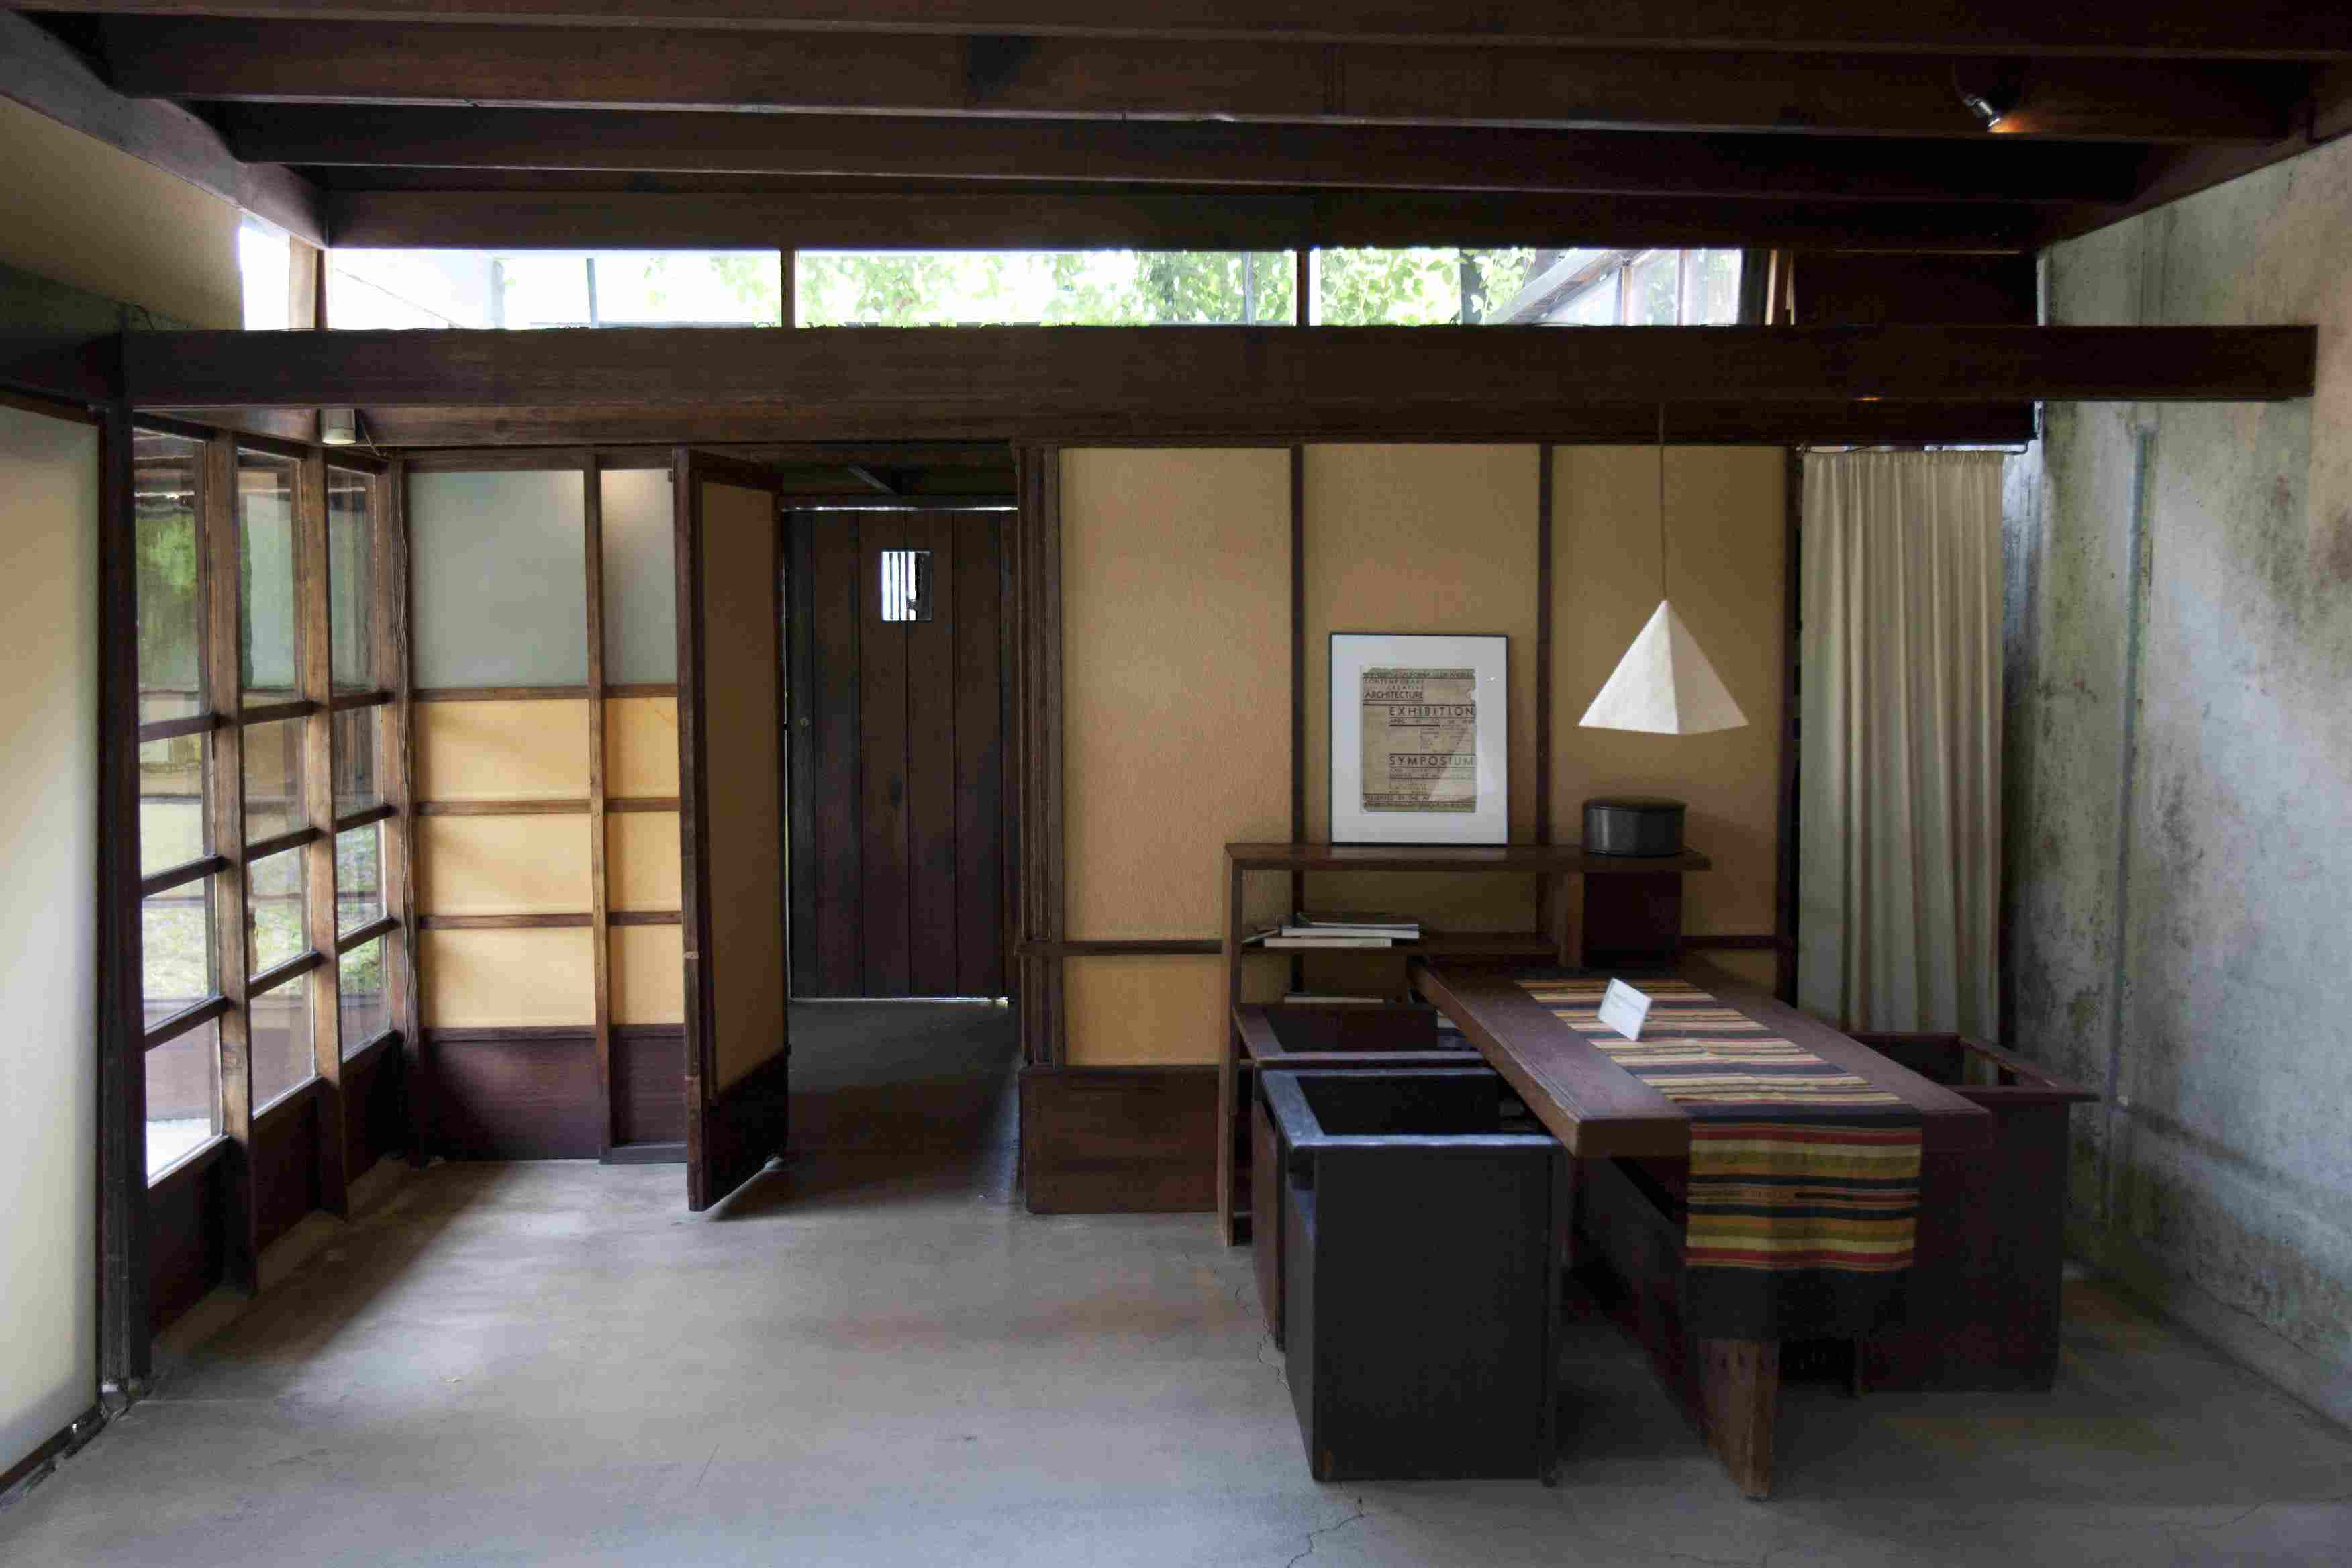 Wall of windows and clerestory windows light interior space at the 1922 Schindler House in Los Angeles, California